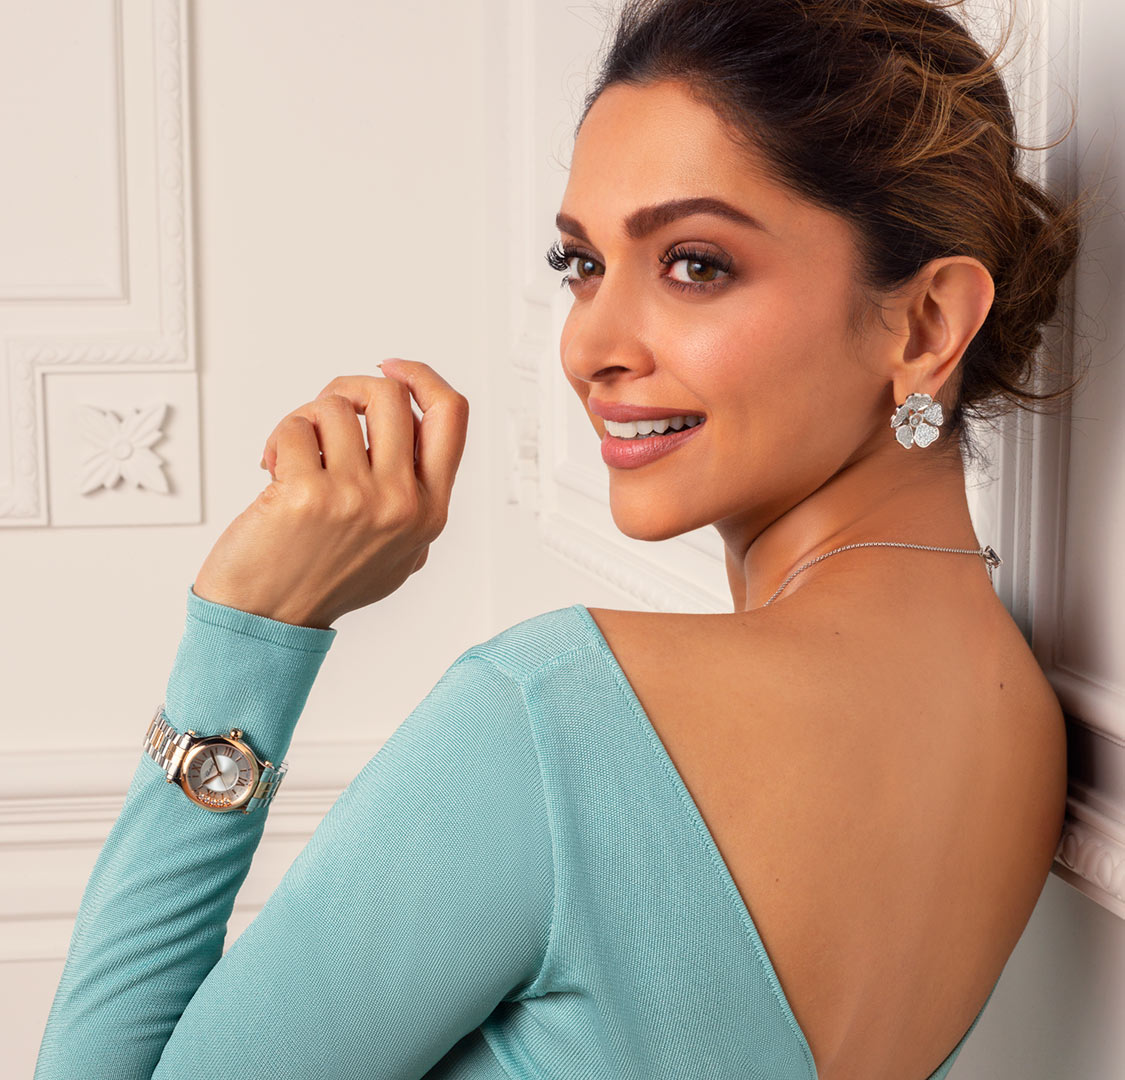 Close-up of deepika against a wall